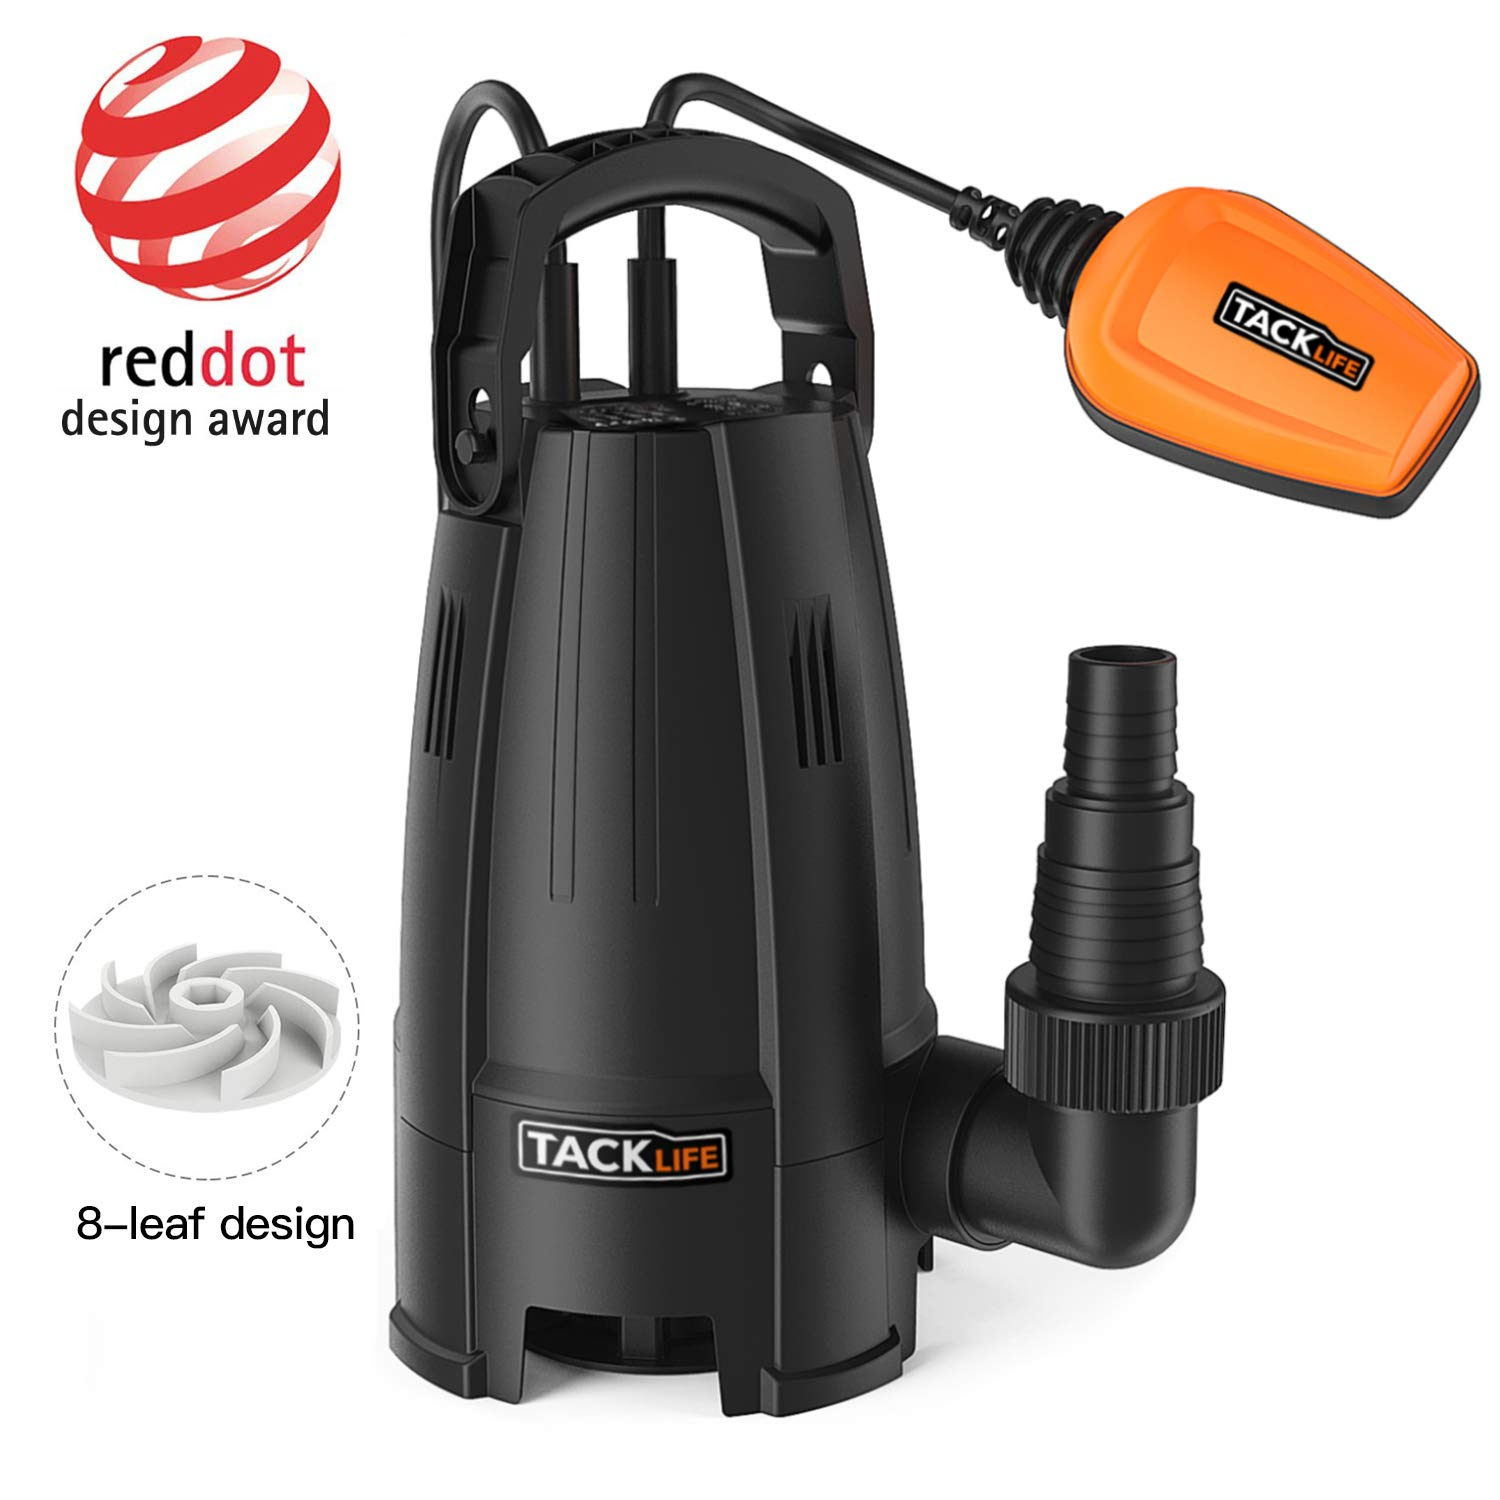 TACKLIFE Submersible Water Pump, 400W 9000 L/h Clean Dirty Water, 8-Blade impellers, Max Granule 25 mm, Height 5 m, Maximum Depth 6 m, Cable 10 m, Heavy Duty Float Switch GSUP2B